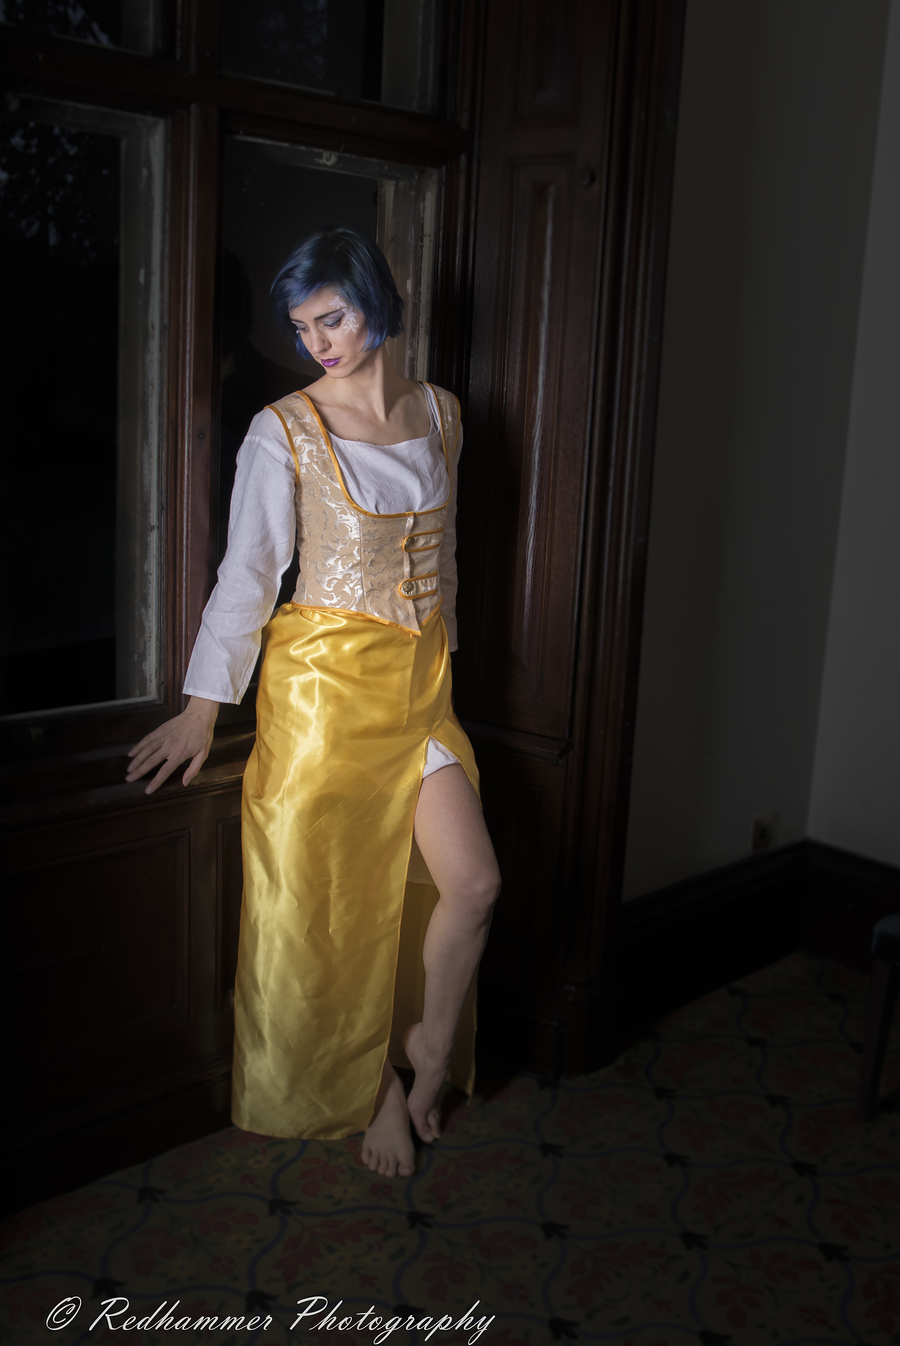 Its getting late / Photography by Redhammer, Model Miss Luna Lustre / Uploaded 27th January 2019 @ 08:12 PM